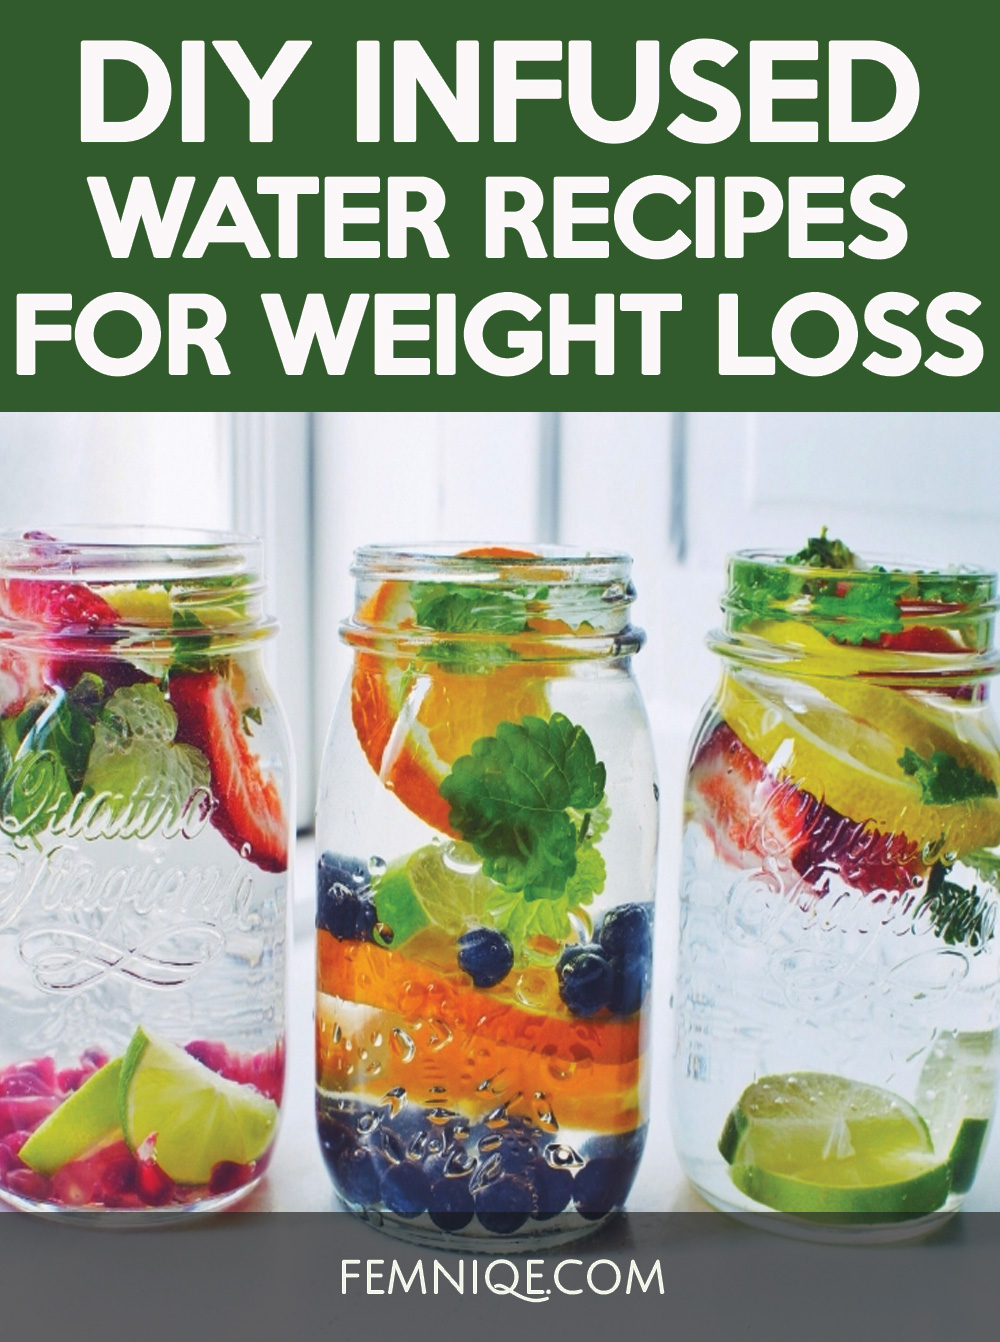 Get in your daily water quota with this Fruit-Infused Water – 6 ways! From berries, to citrus, to cucumber and herbs, we've got you covered for refreshing drink recipes all summer long!